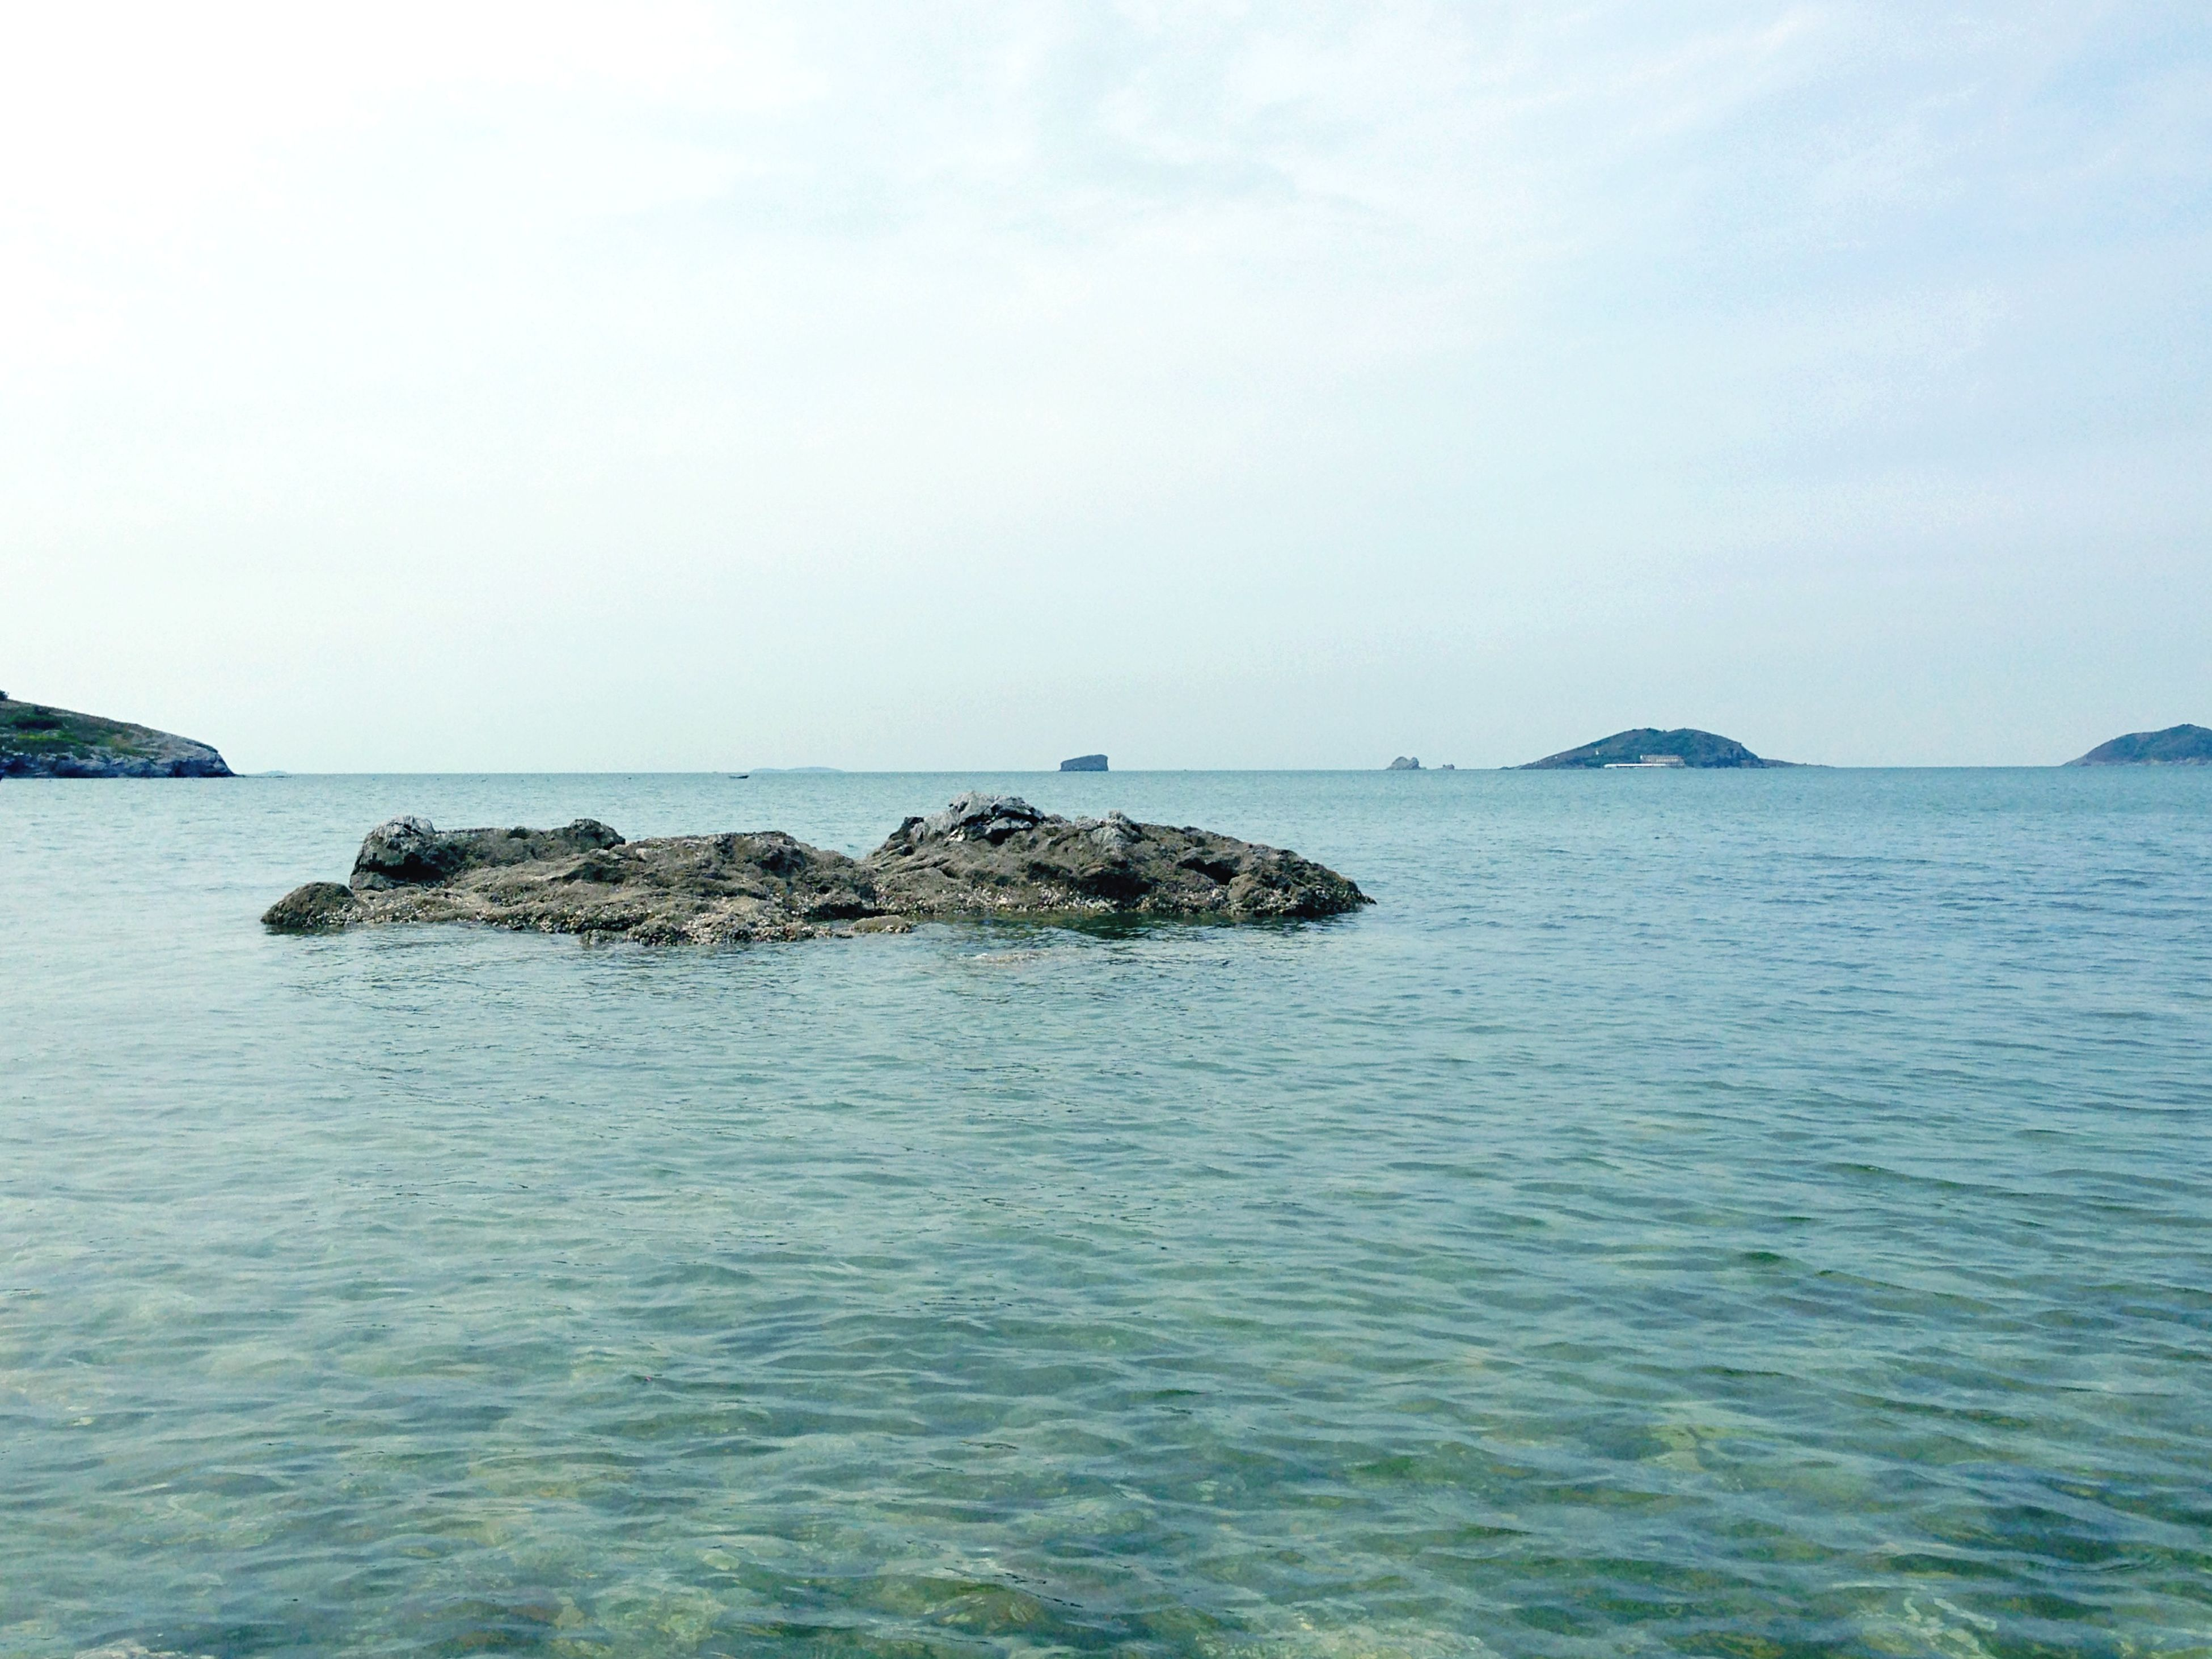 sea, water, horizon over water, tranquil scene, tranquility, scenics, beauty in nature, waterfront, nature, sky, rippled, idyllic, copy space, rock - object, blue, rock formation, clear sky, seascape, day, outdoors